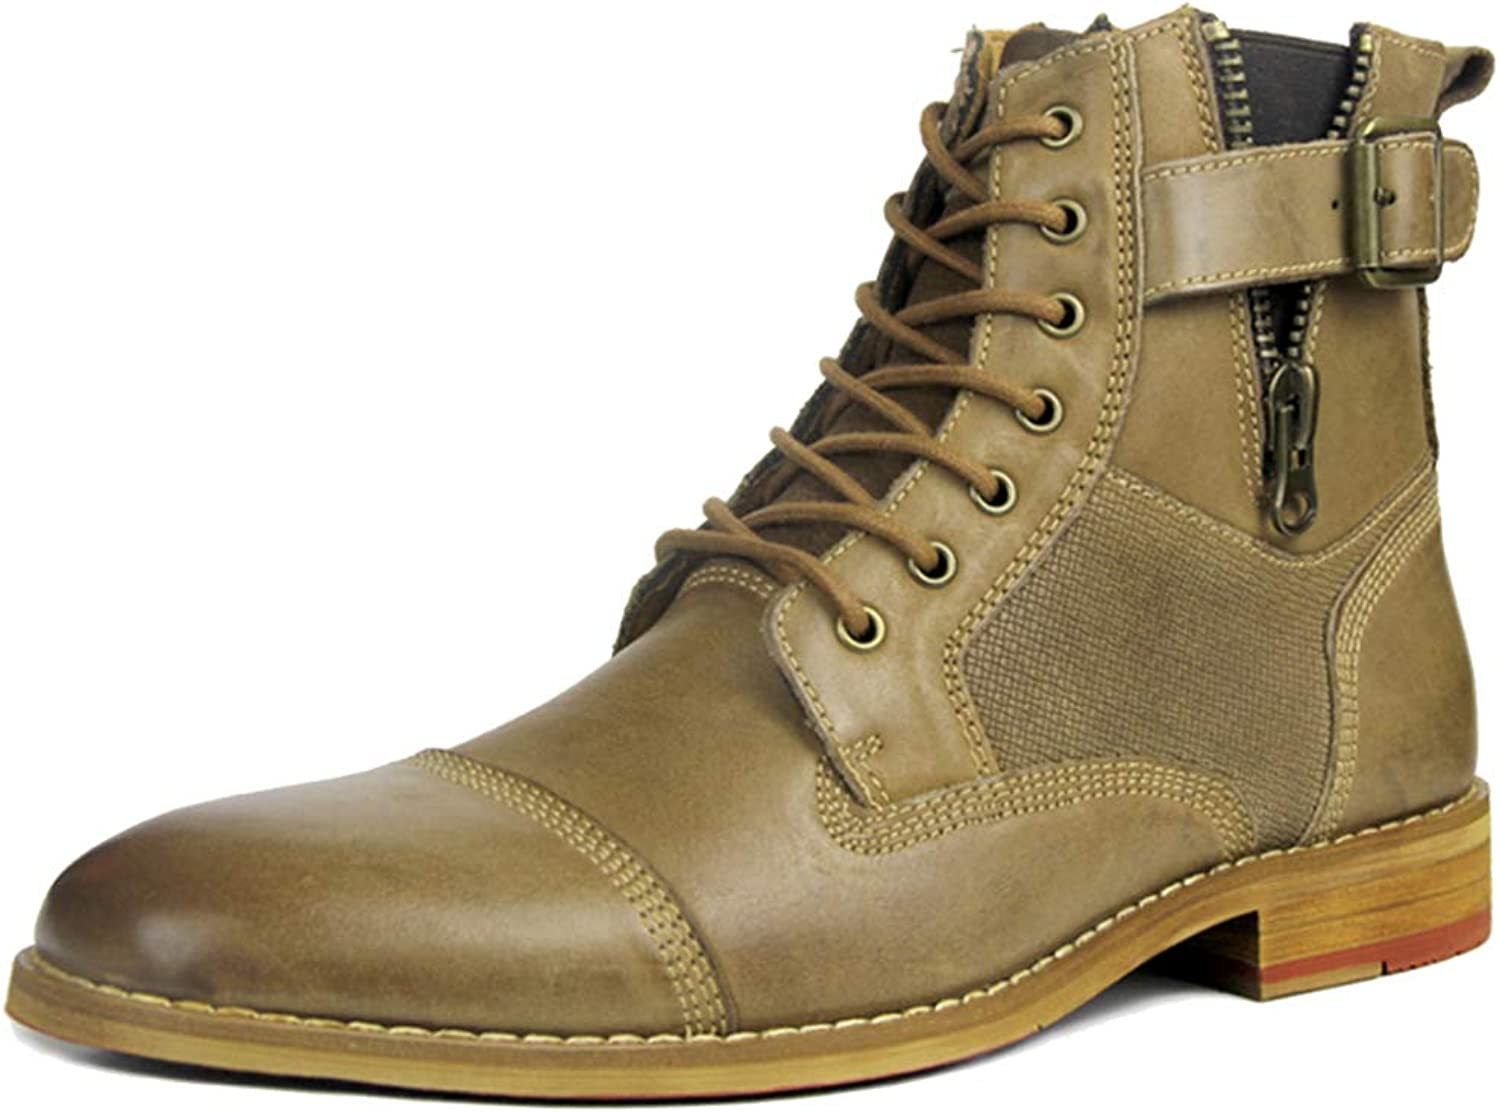 Ankle Boots Mens Full Grain Leather Formal Dress Martin Boot Desert Boot